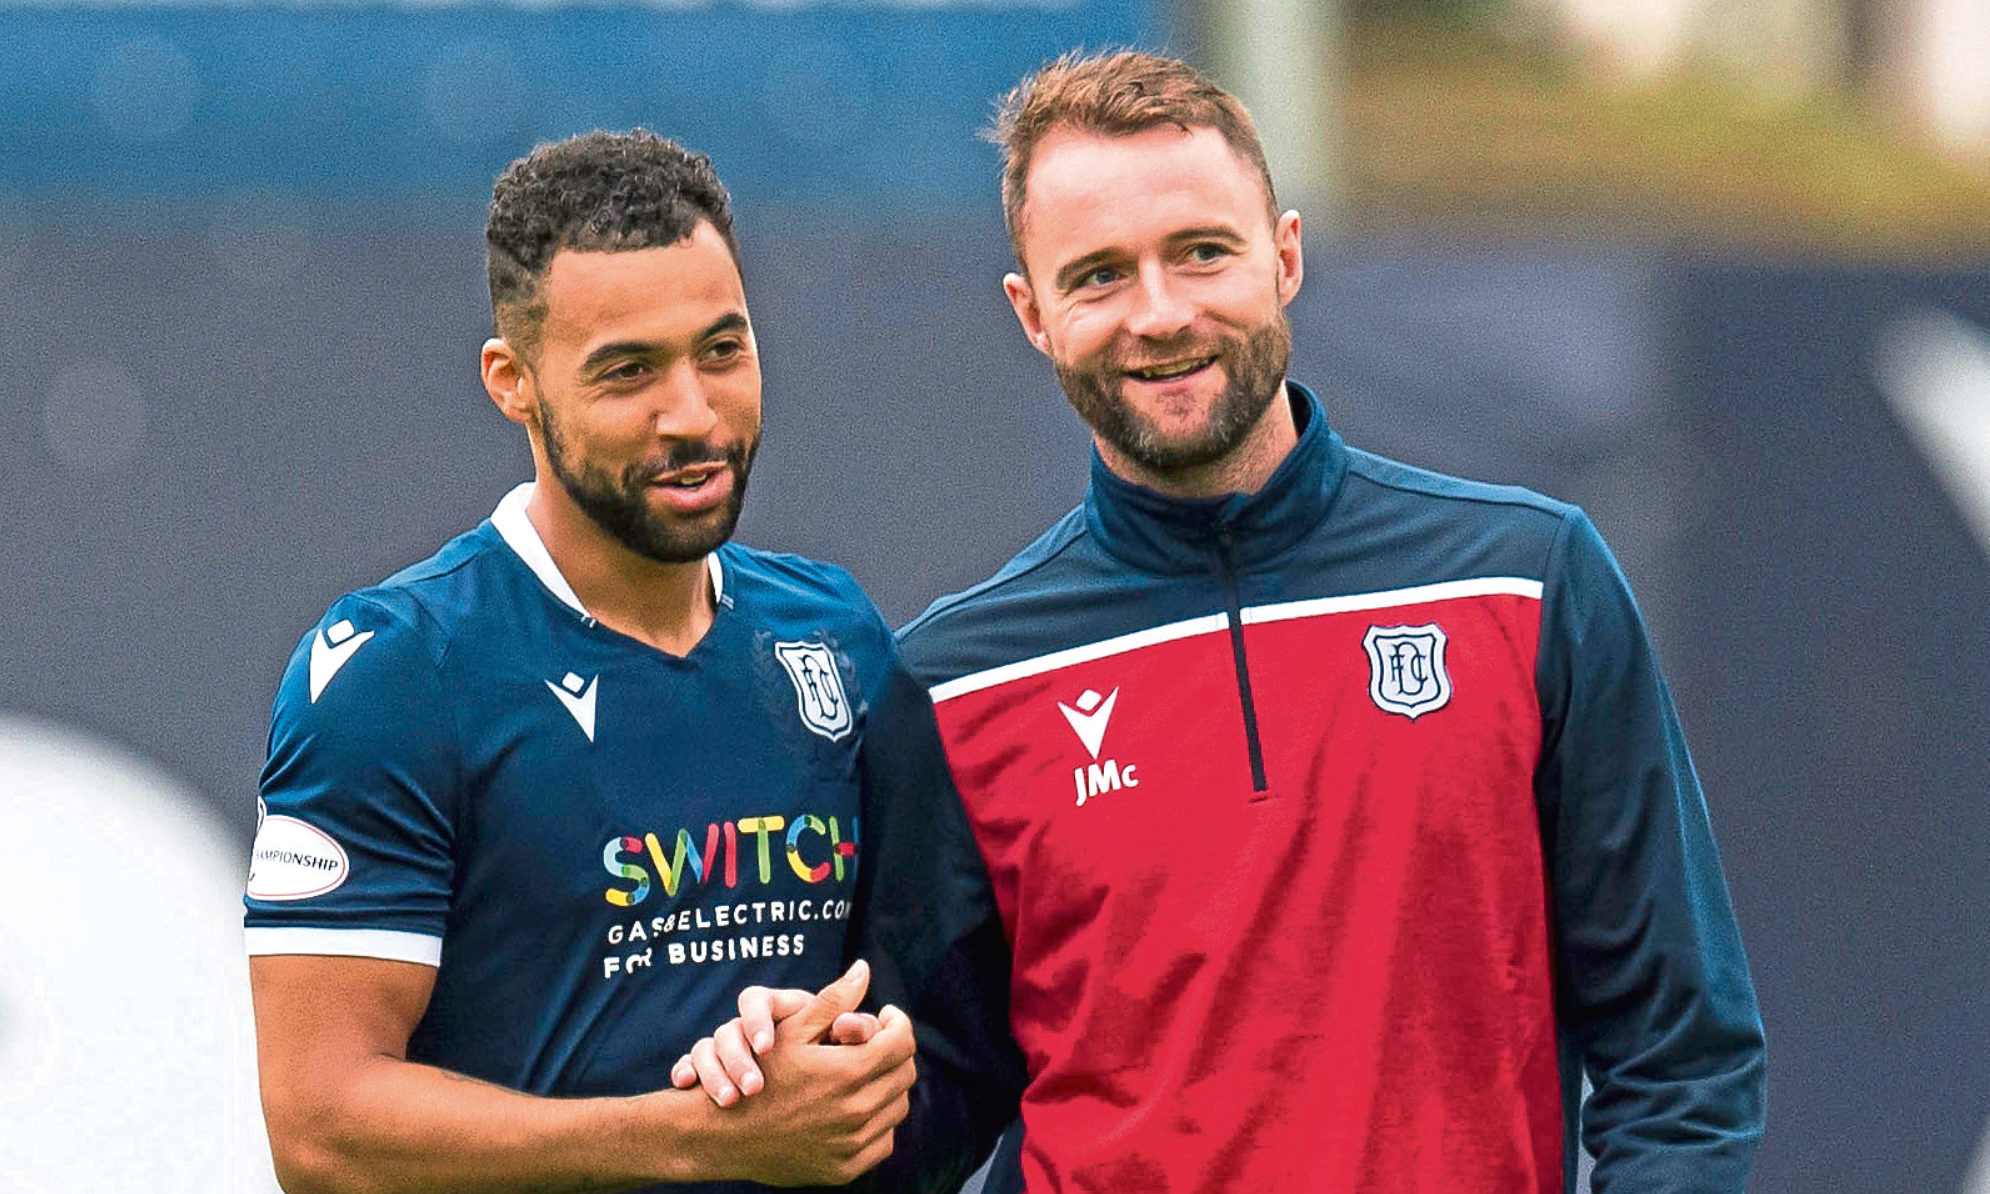 Dundee boss James McPake is delighted to have striker Kane Hemmings available for tomorrow's game against Inverness CT.